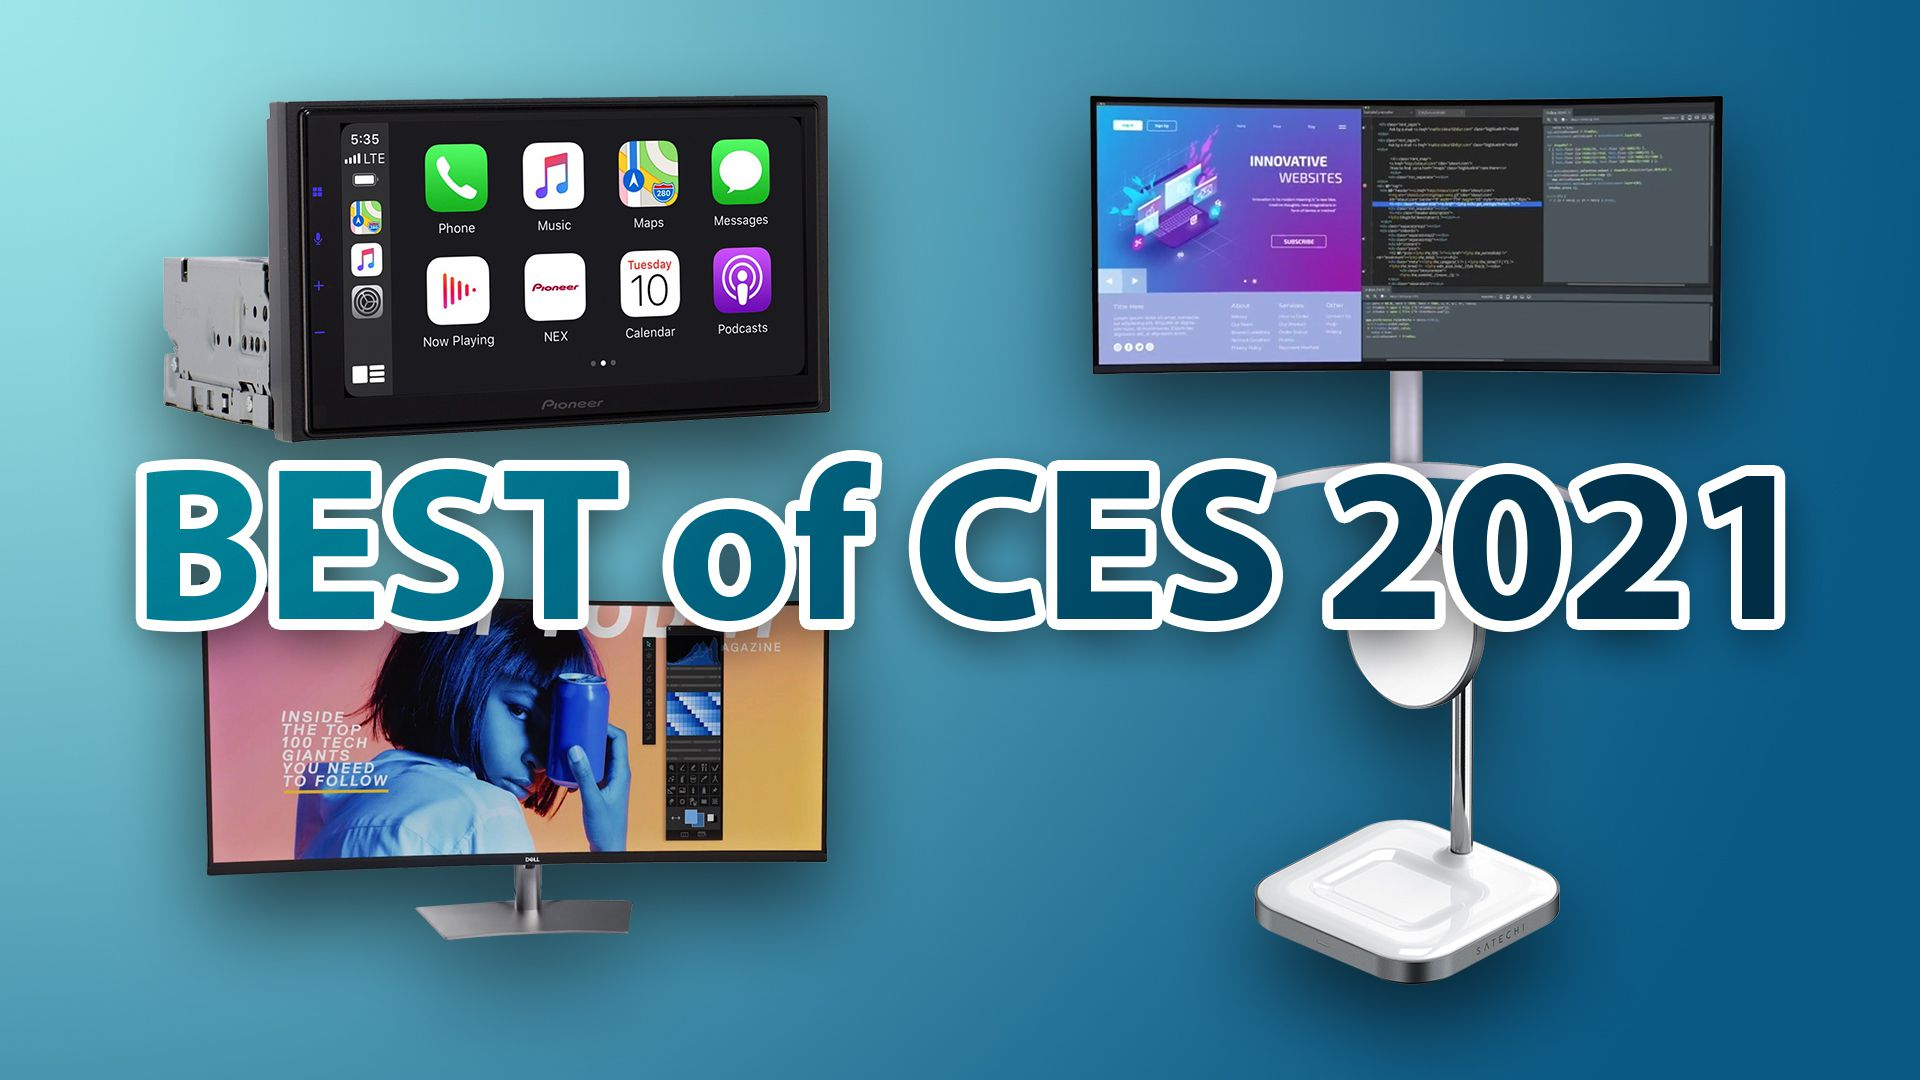 CES 2021 is taking place digitally this year, and it hasn't been as exciting as in past years because many vendors have opted out. That said,...